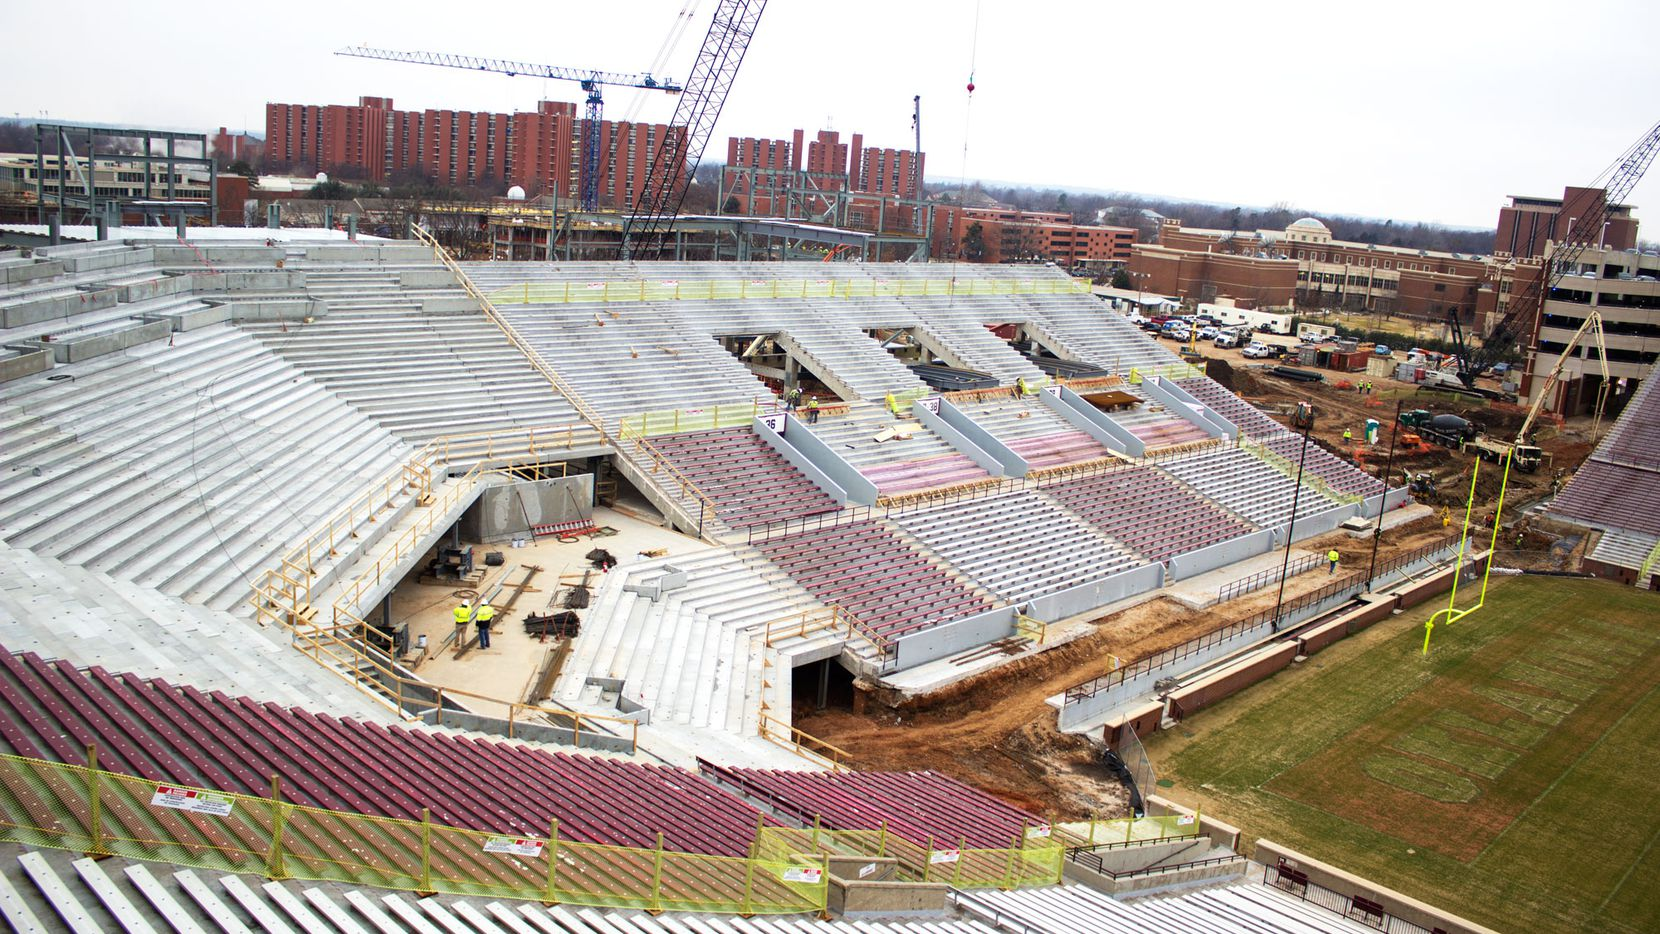 NORMAN, Okla. — Oklahoma continues with the first phase of its stadium construction project, which is expected to be completed in early August.